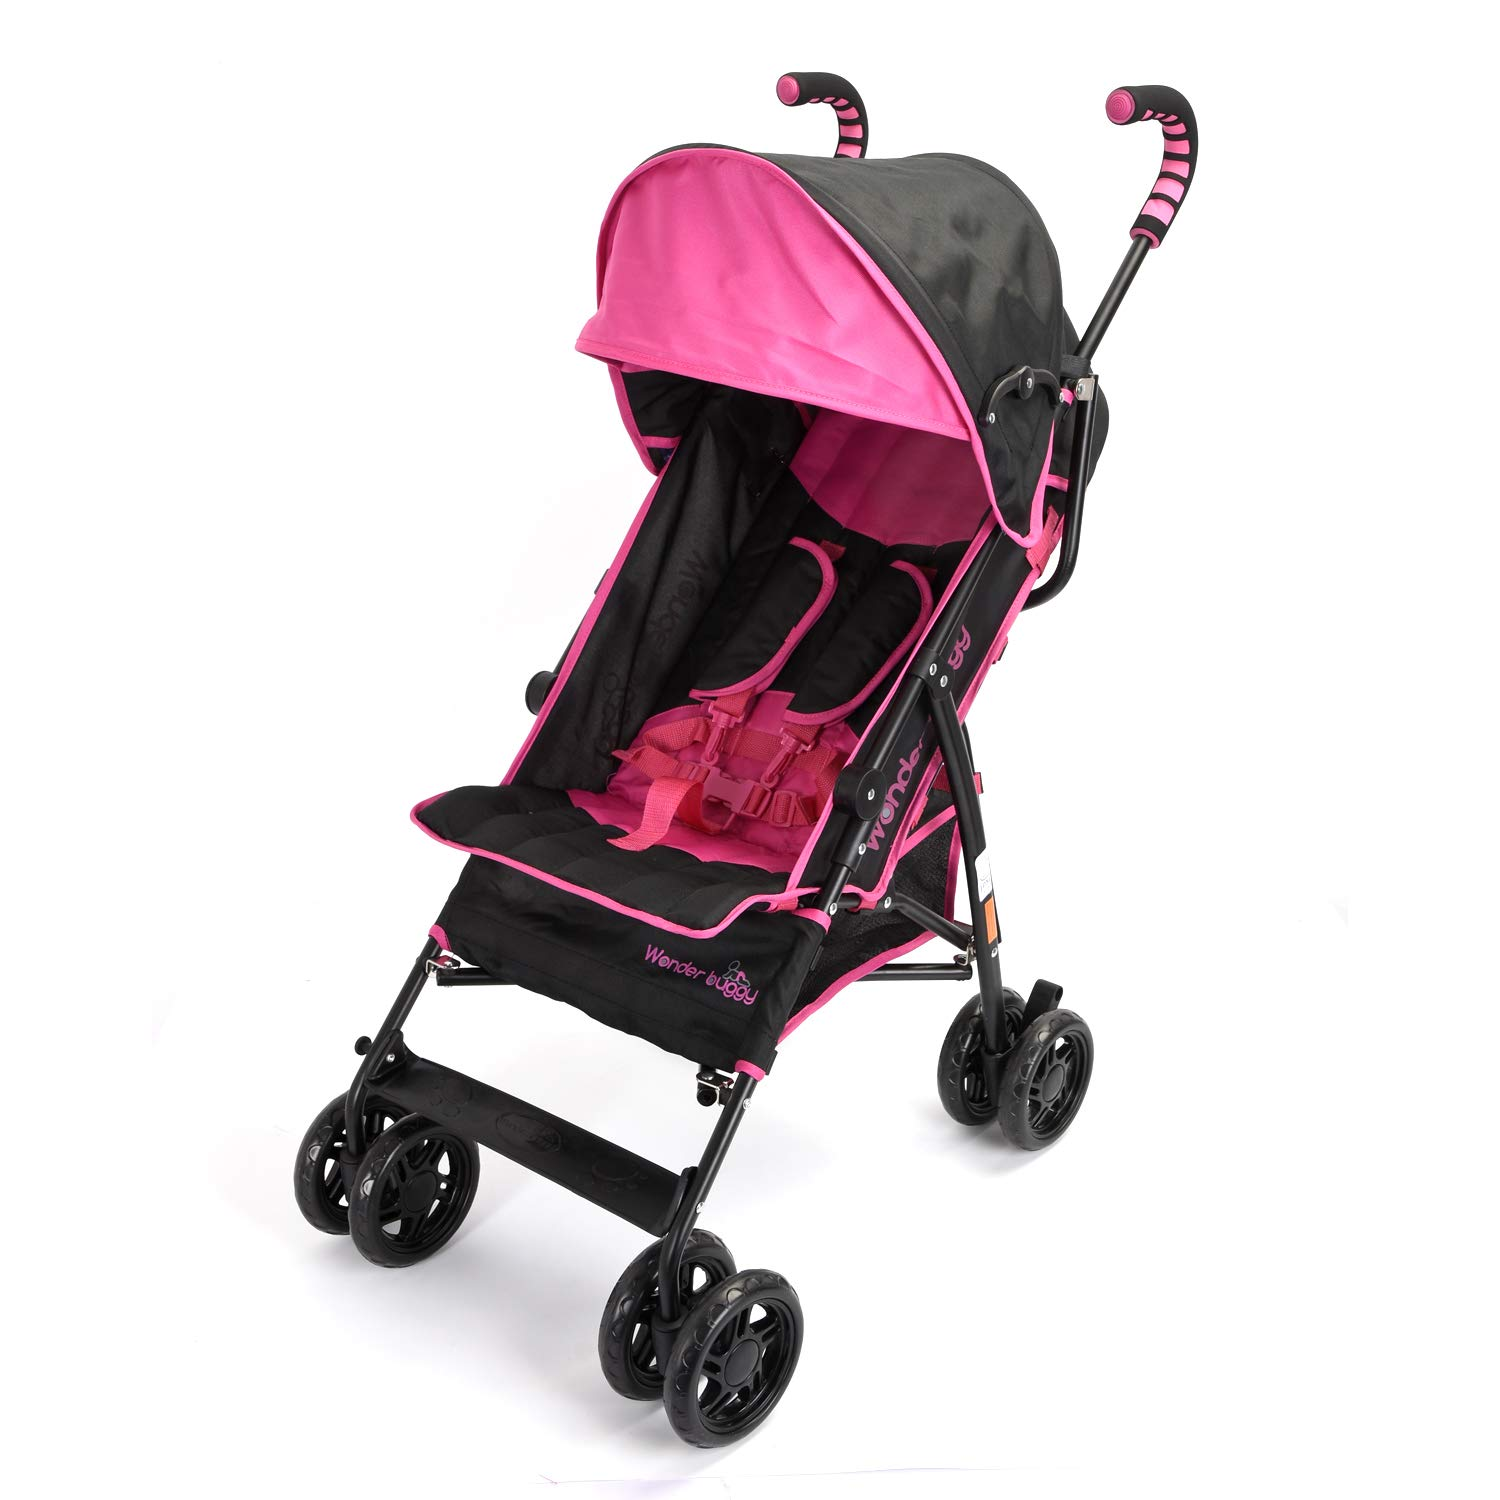 Wonder buggy Umbrella Strollers Lightweight, Baby Stroller with Large Canopy Rounded Hood and Basket, Mulit Position Foldable Infant Baby Travel Stroller Lightweight (Pink)